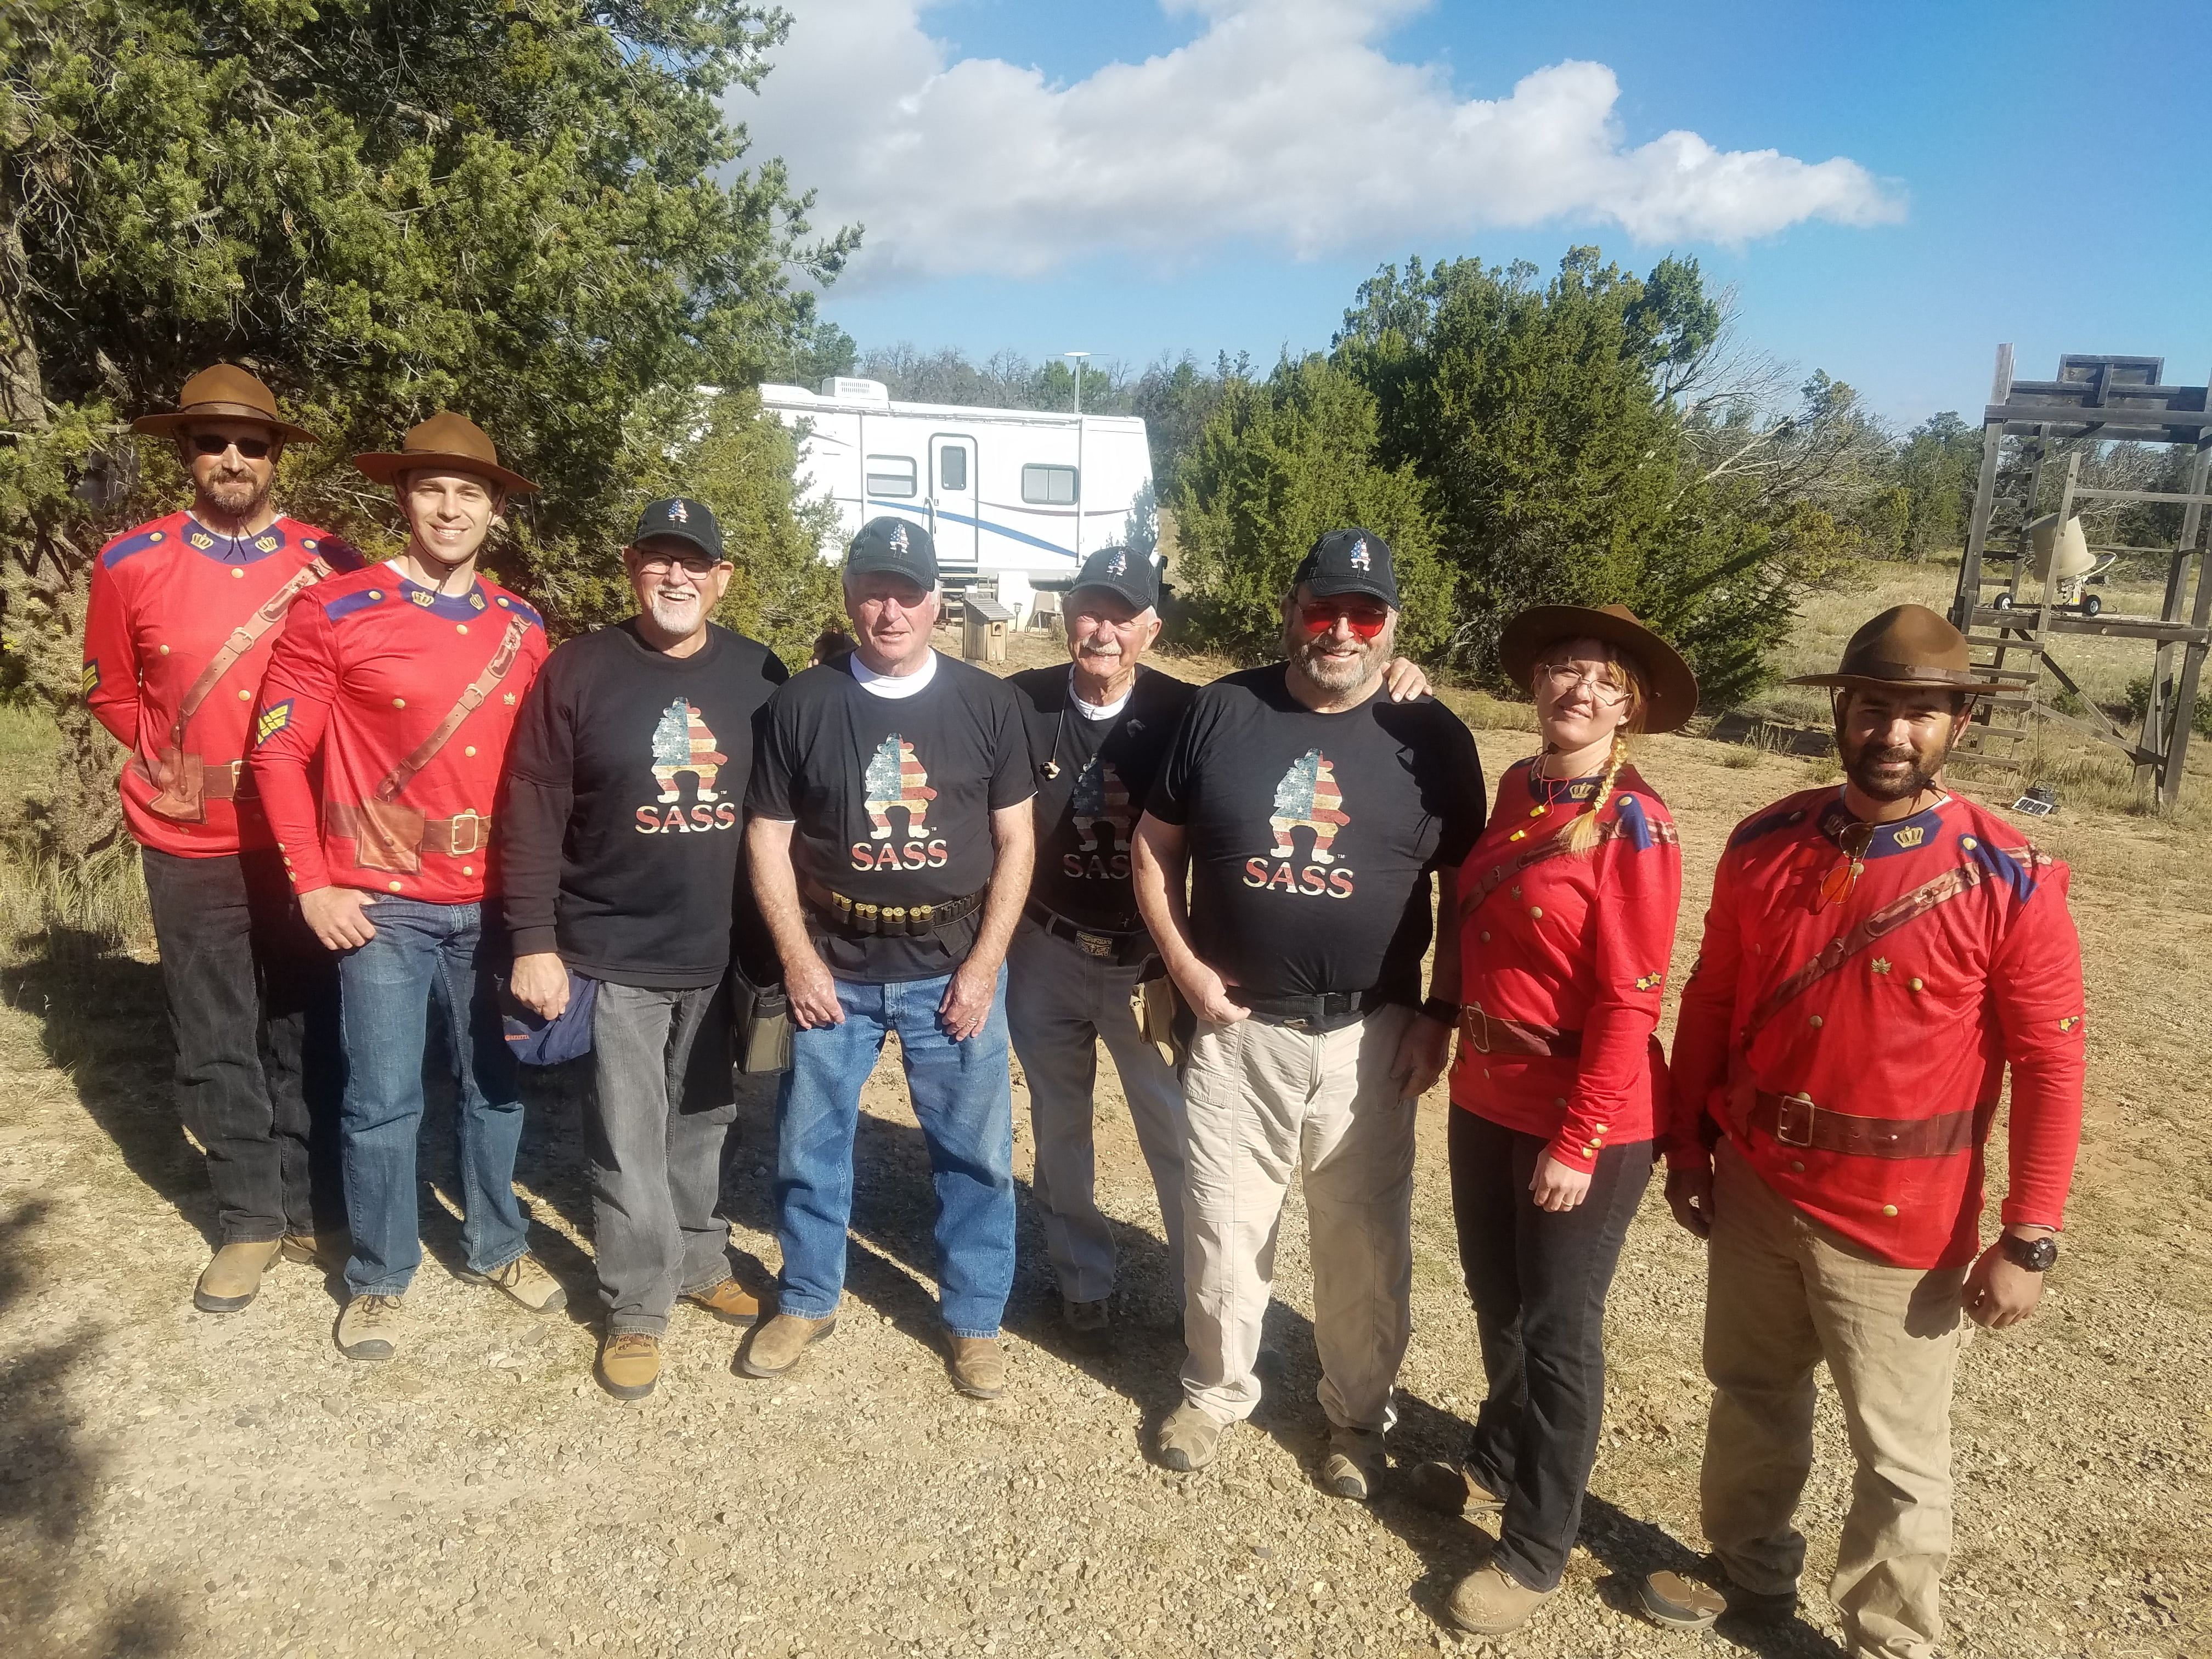 2017 Bustin' Clays Champions Crowned